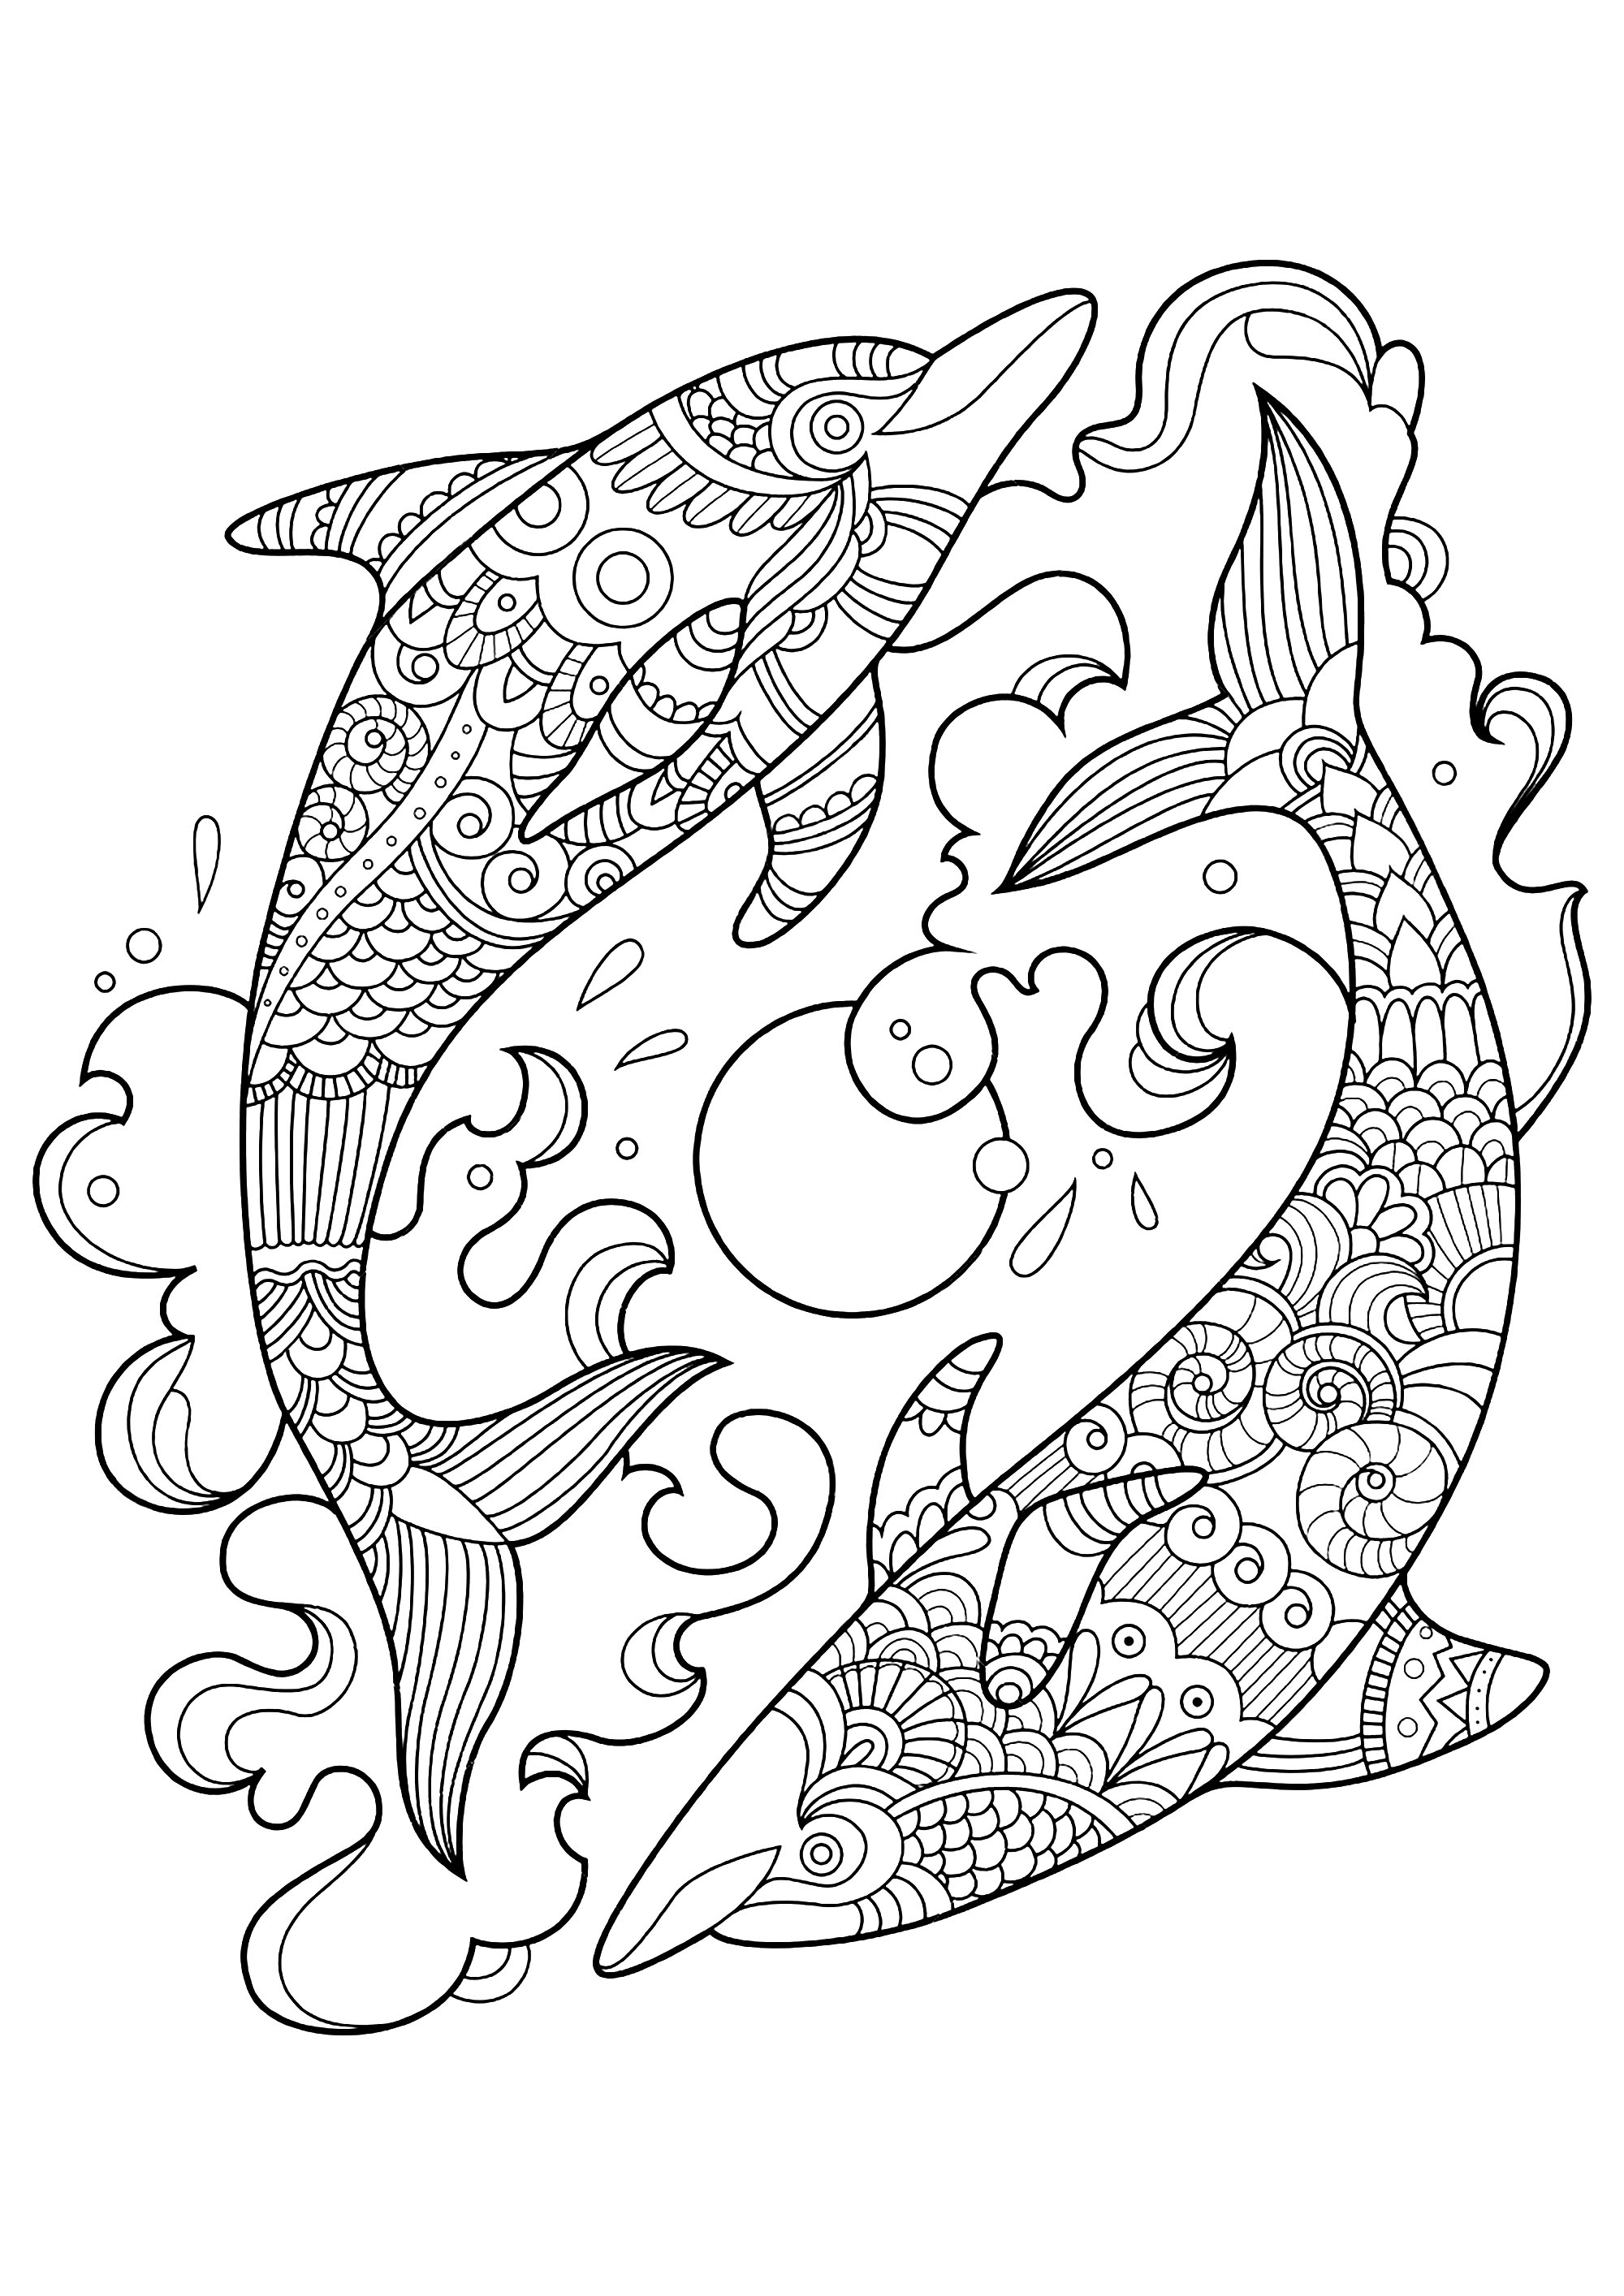 Two Dolphins In The Ocean Dolphins Adult Coloring Pages